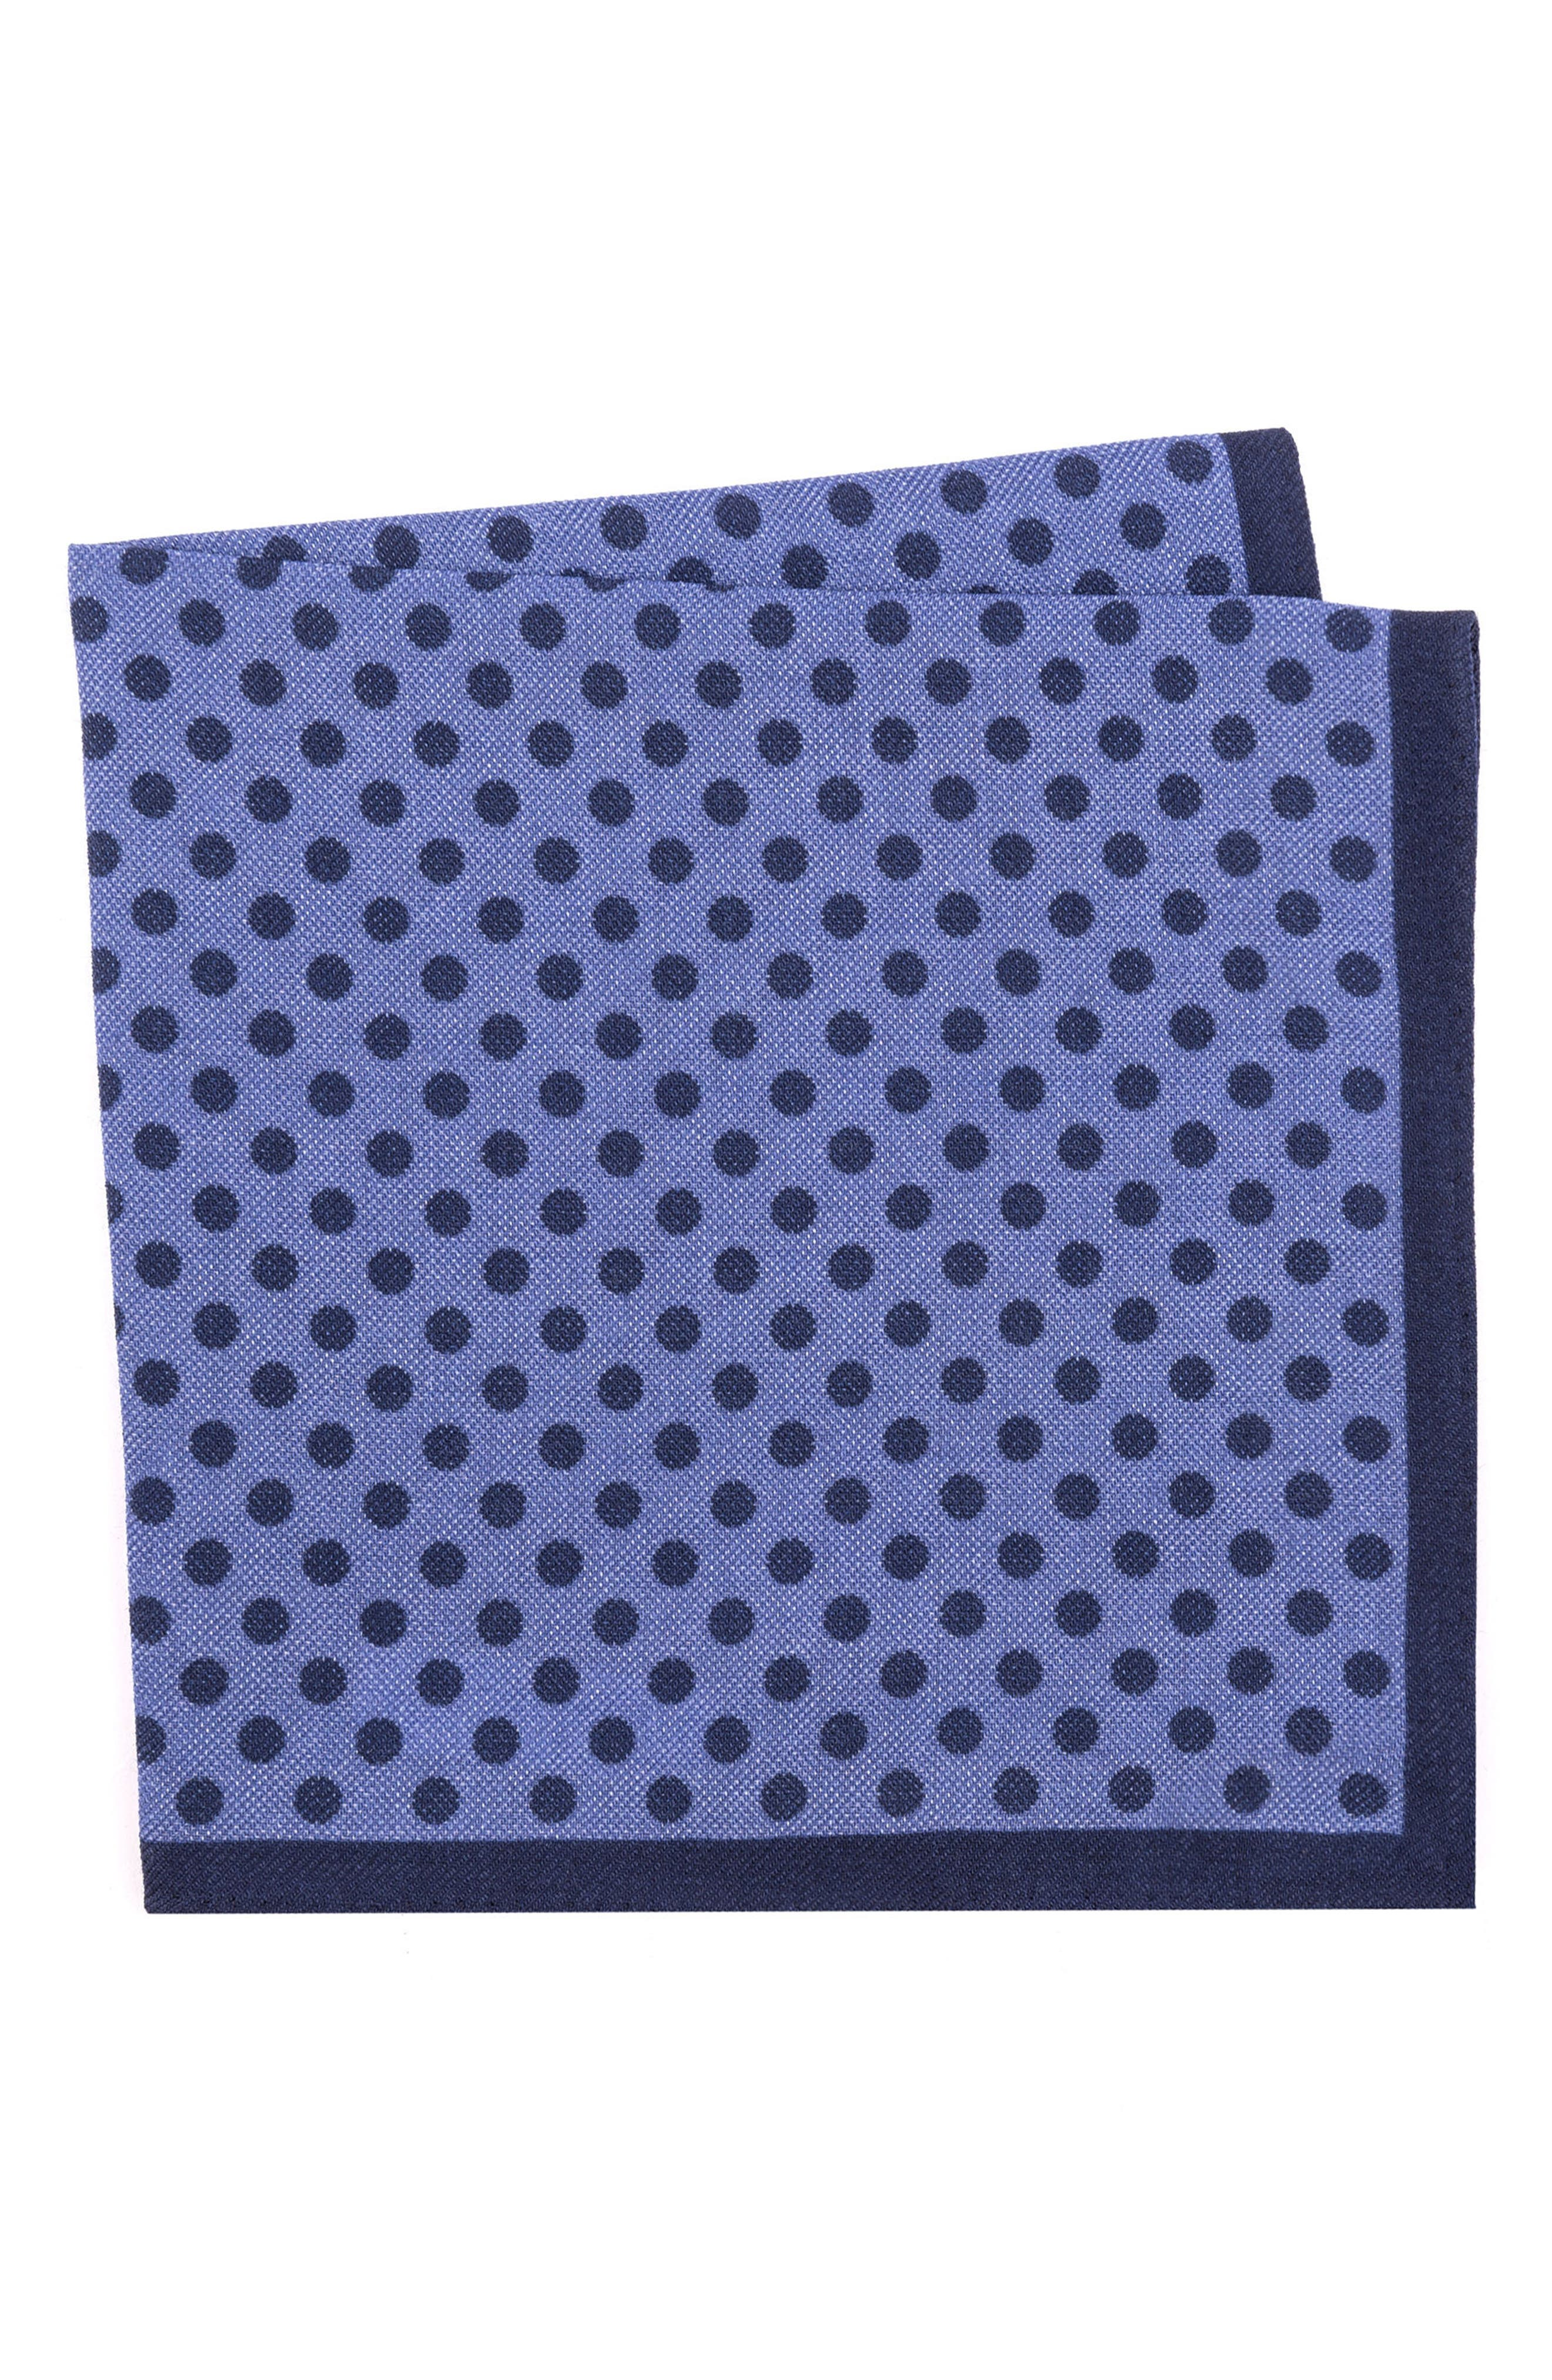 TED BAKER LONDON Dot Wool Pocket Square, Main, color, 400